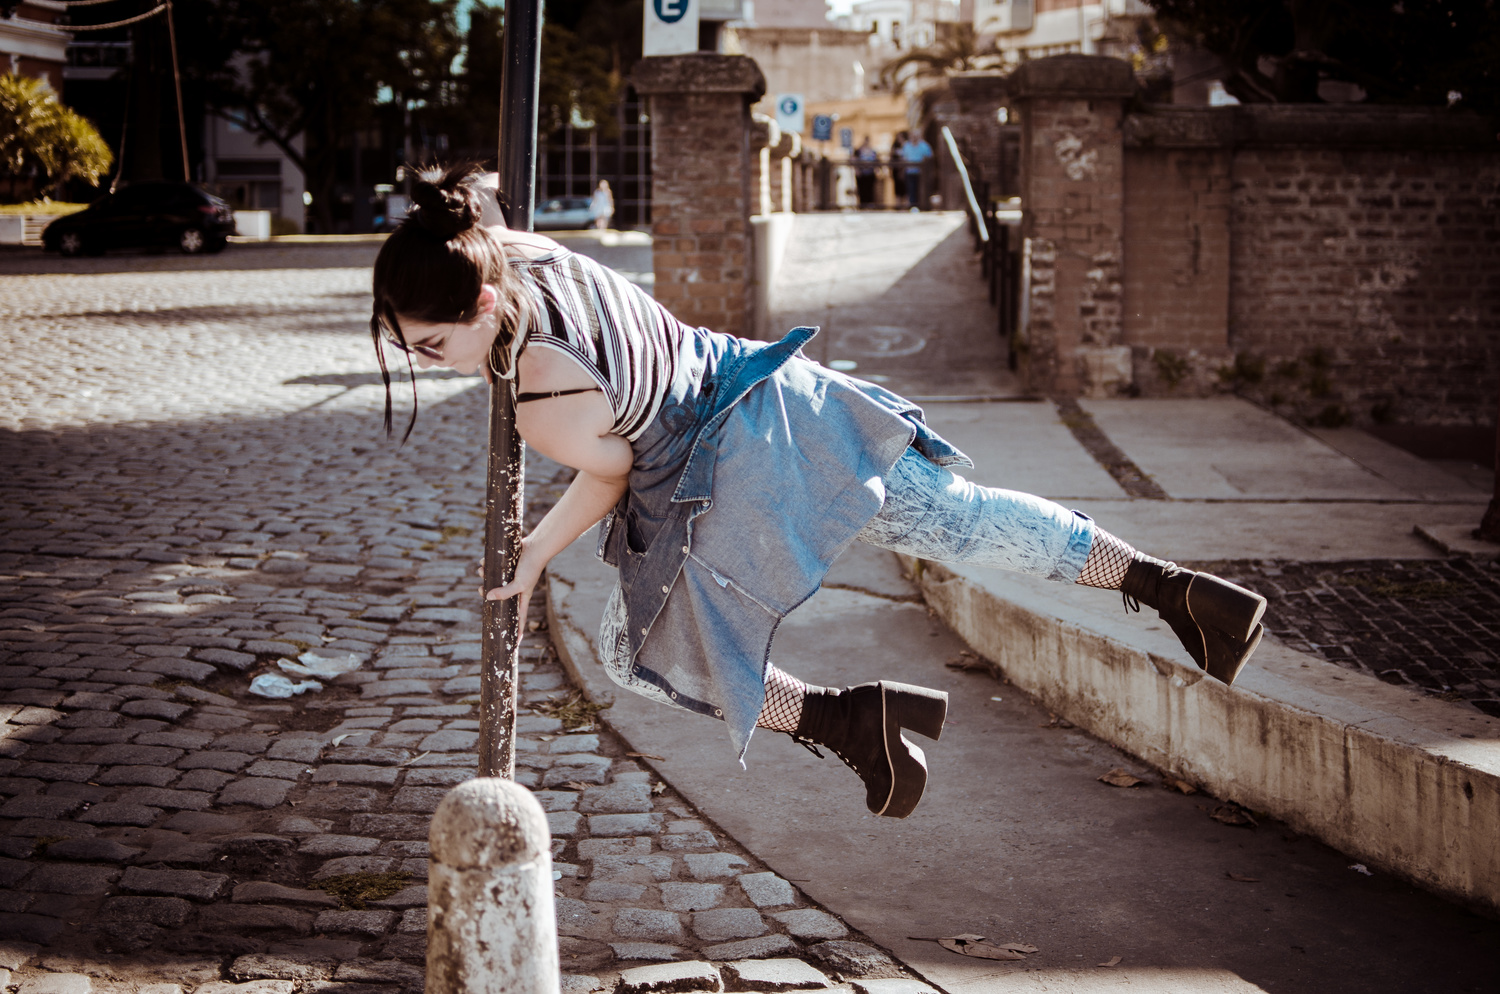 Poledancing in the streets by Cristian Corvalan